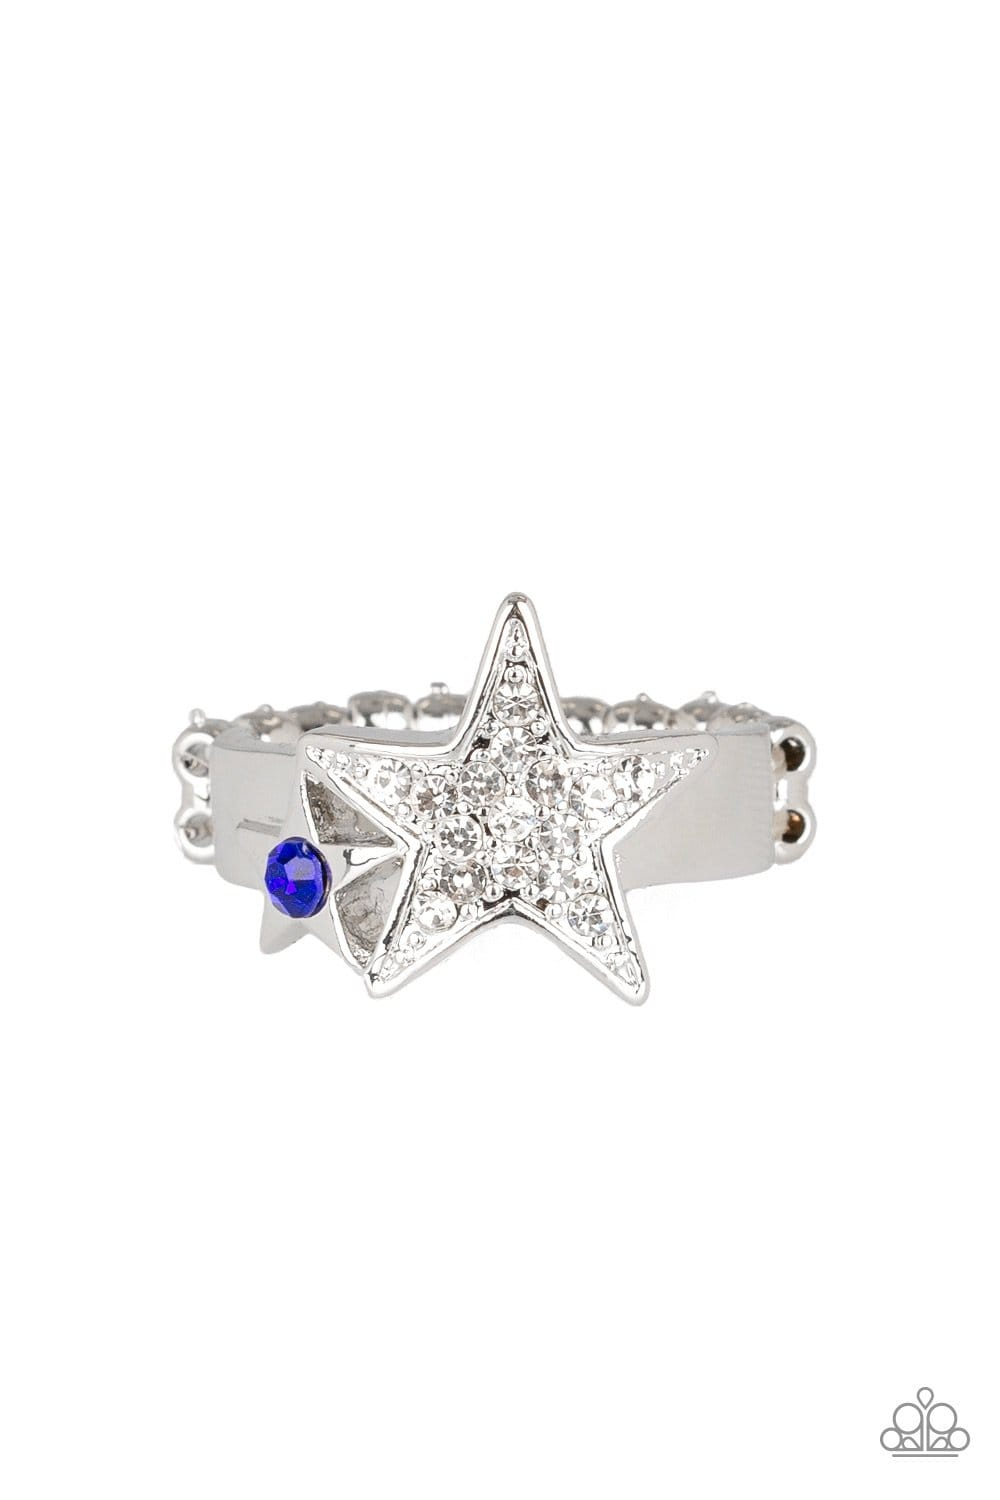 Star-Spangled Starlet - Blue: Paparazzi Accessories - Jewels N' Thingz Boutique